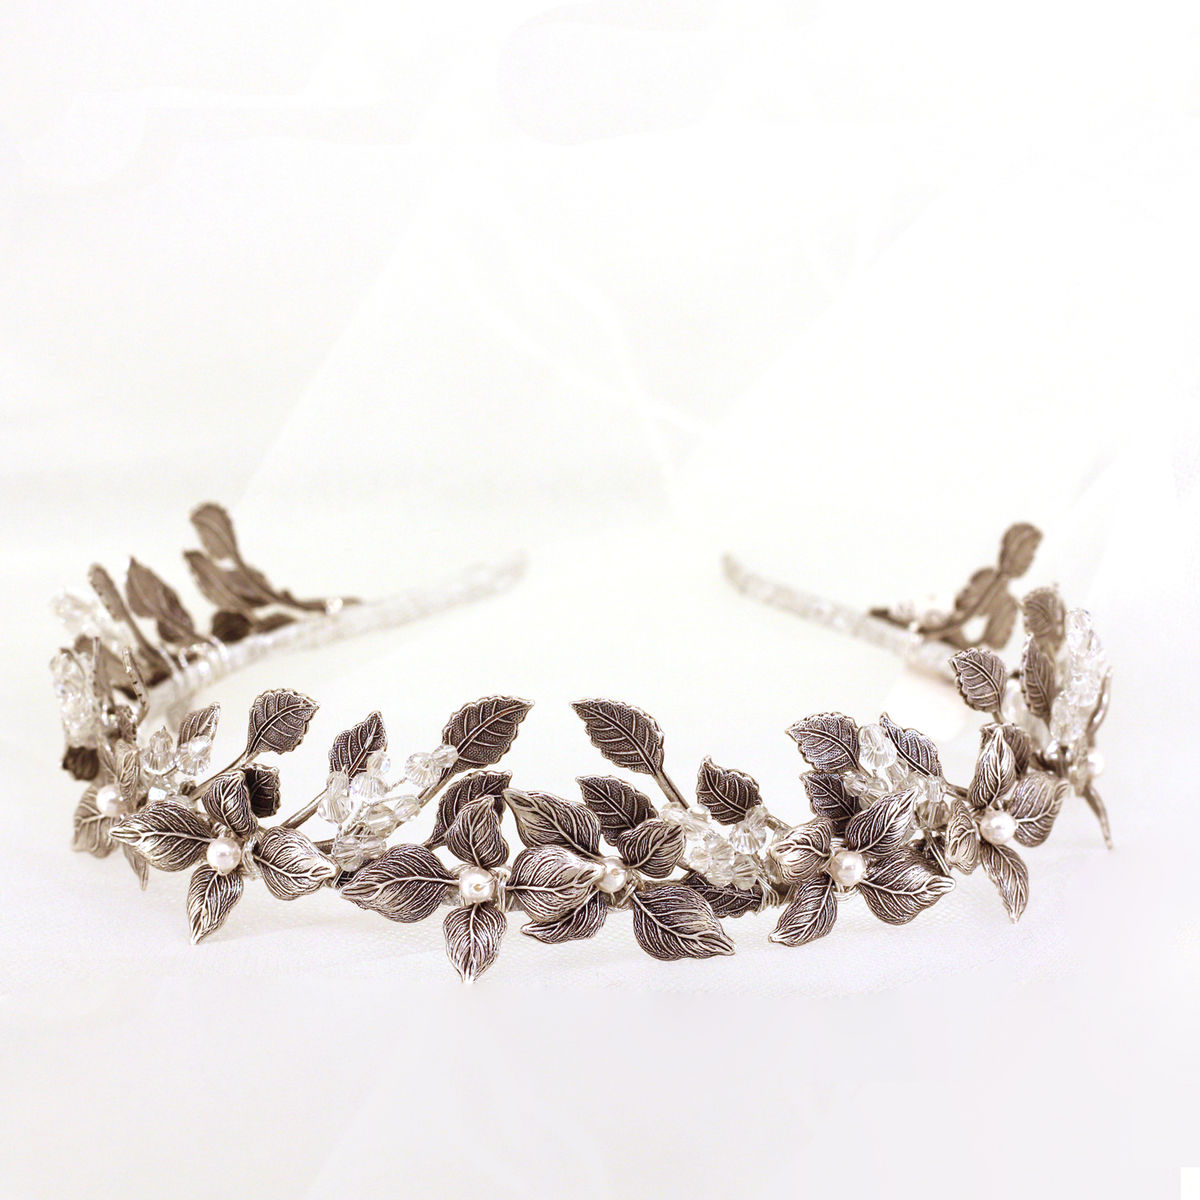 Nymph Silver Crown - product images  of